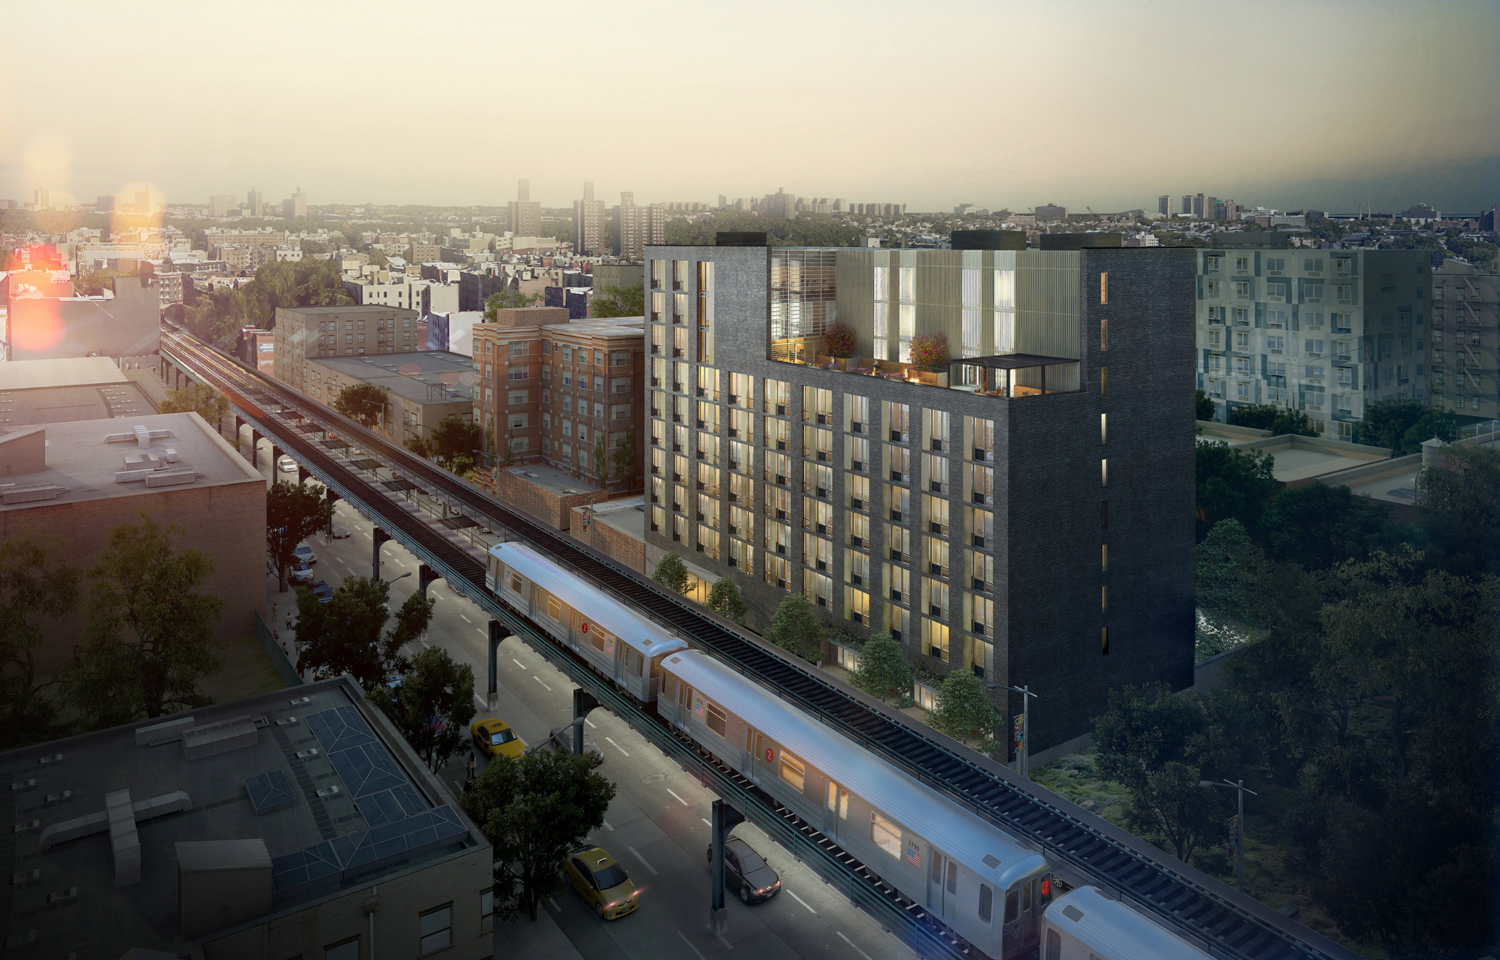 1490 Southern Boulevard, rendering by Bernheimer Architecture